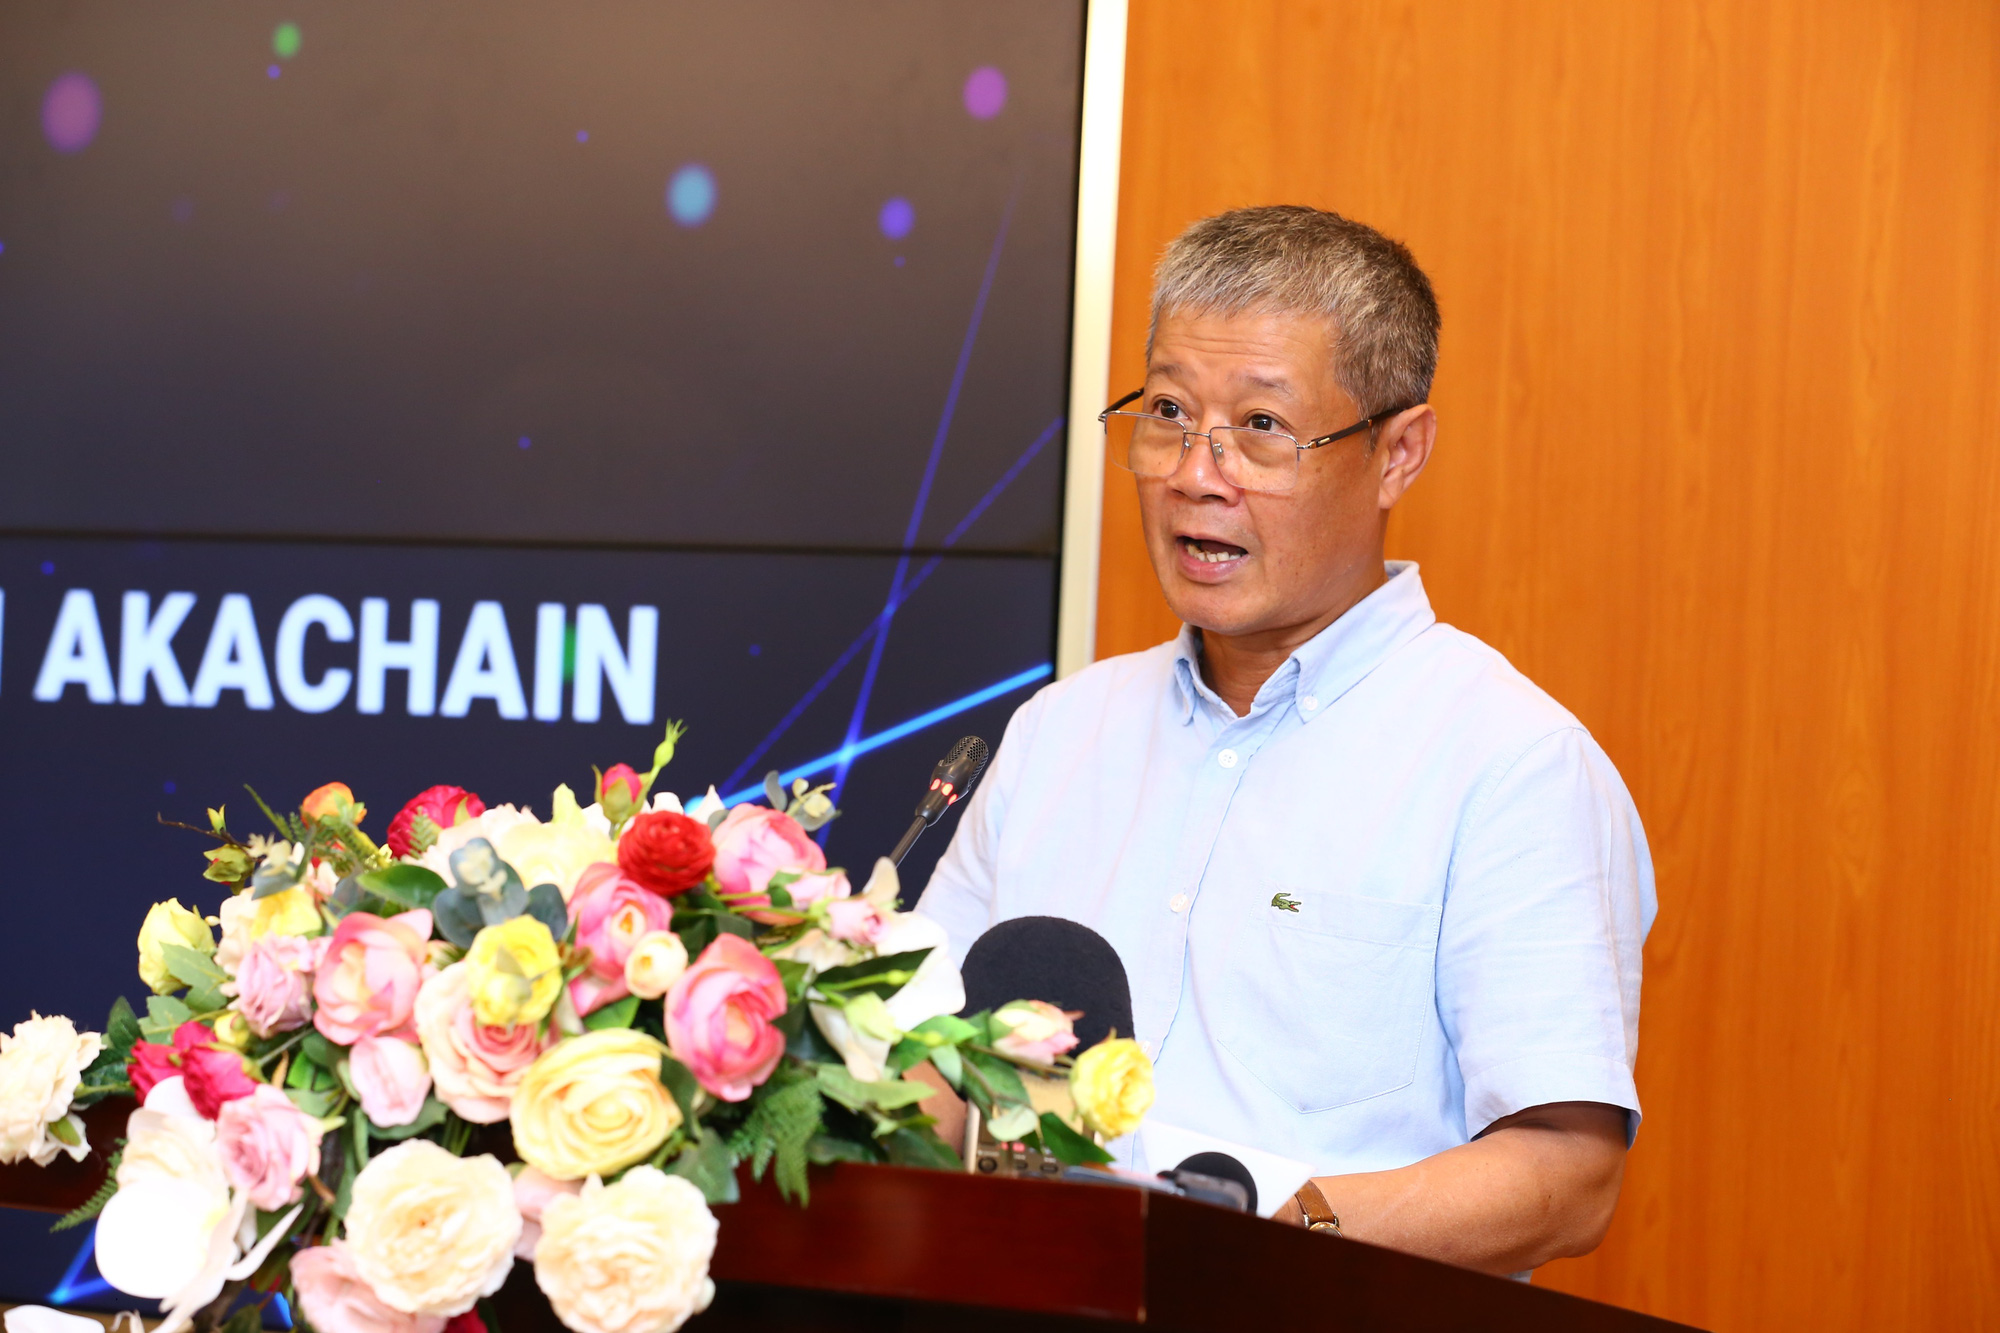 Nguyen Thanh Hung, Vietnamese deputy minister of Information and Communications, speaks at the launch event of akaChain in Hanoi, Vietnam, August 13, 2020. Photo: Pham Phong / Tuoi Tre